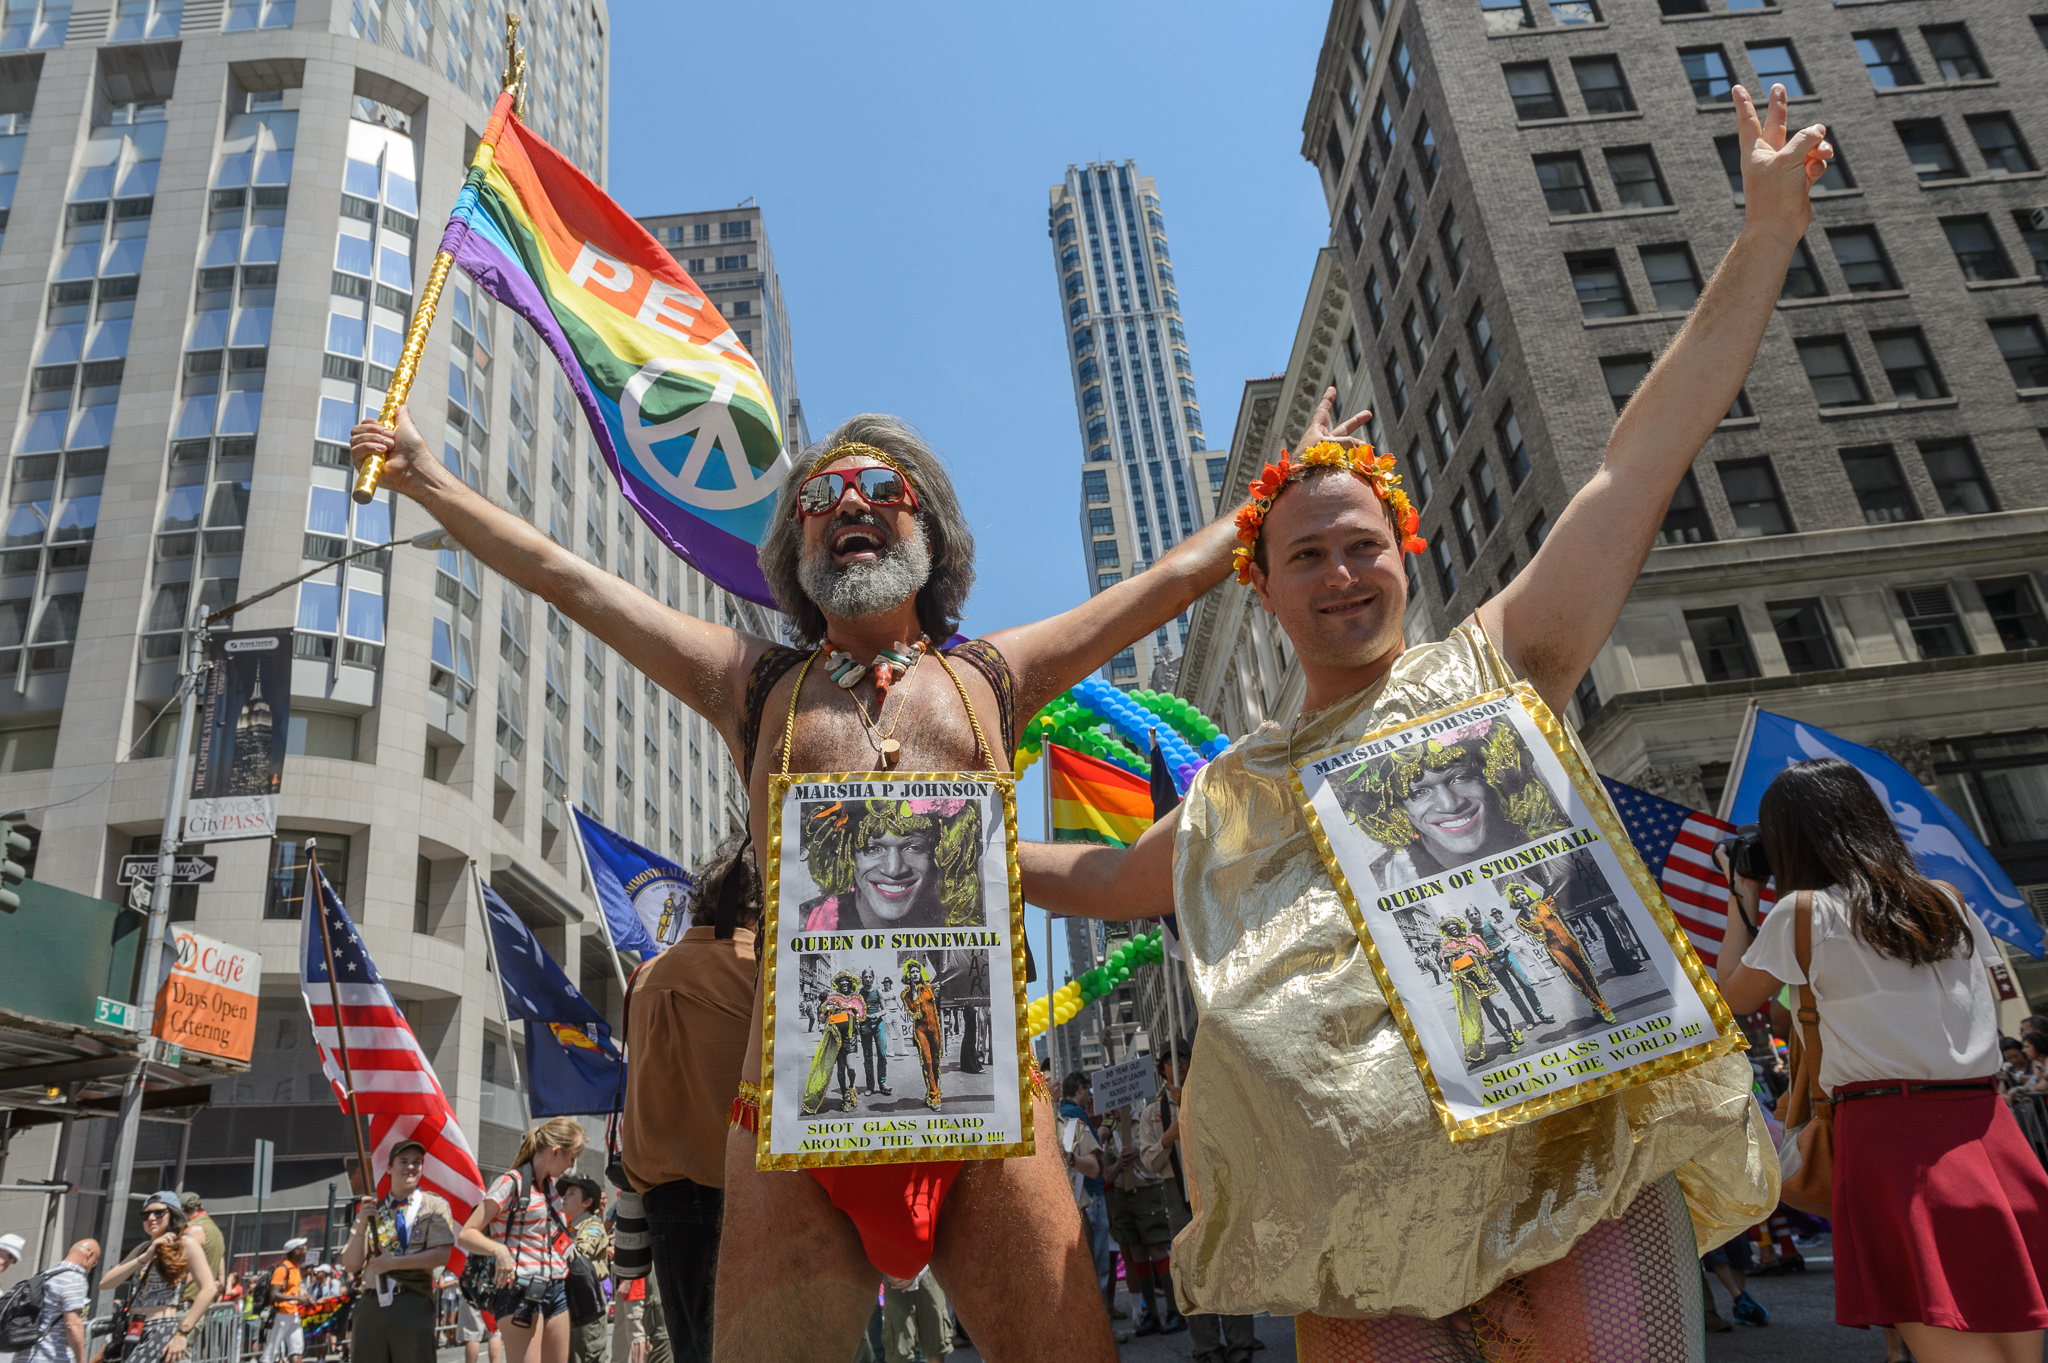 New Yorkers enjoy the Pride Parade on June 29, 2014